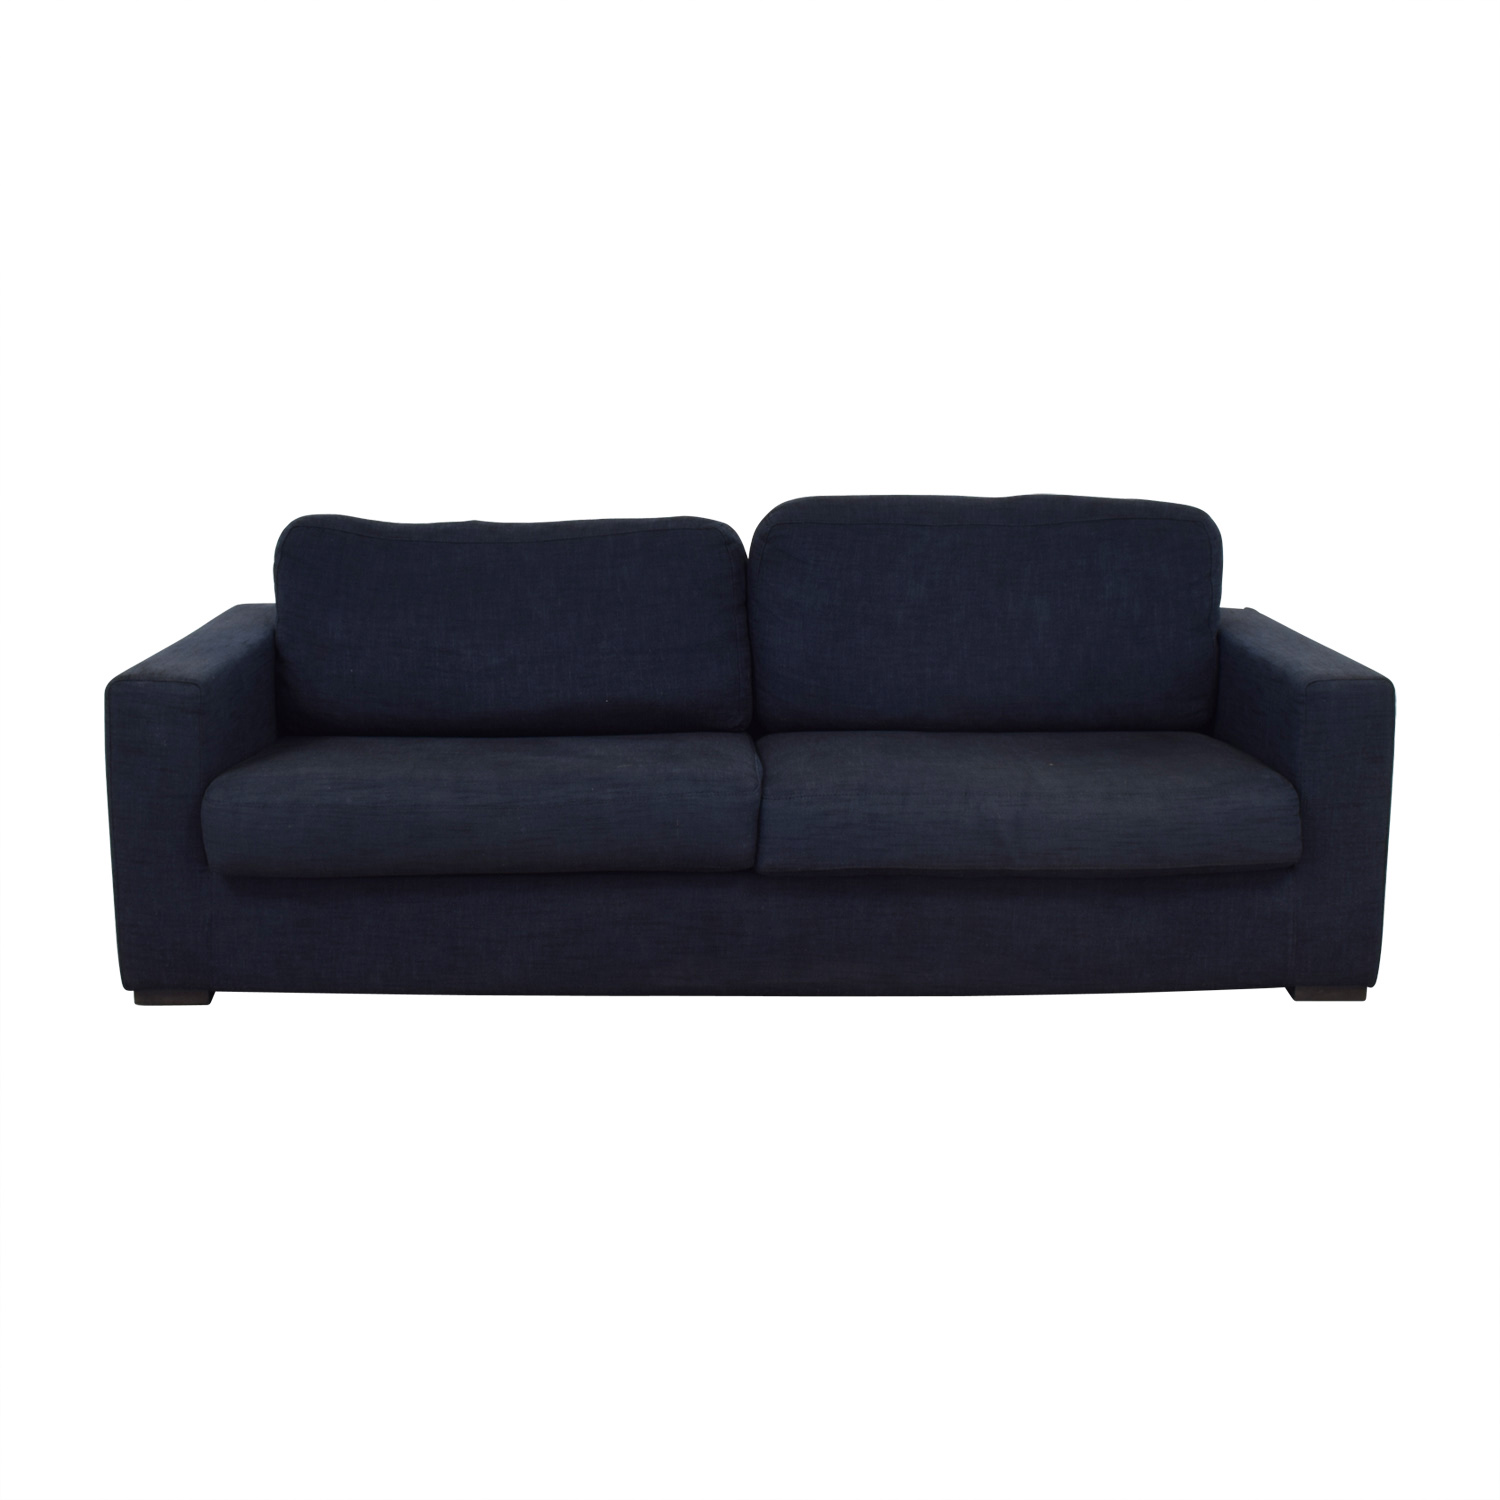 Meridiani Meridiani Italian Navy Linen Two-Cushion Couch dimensions